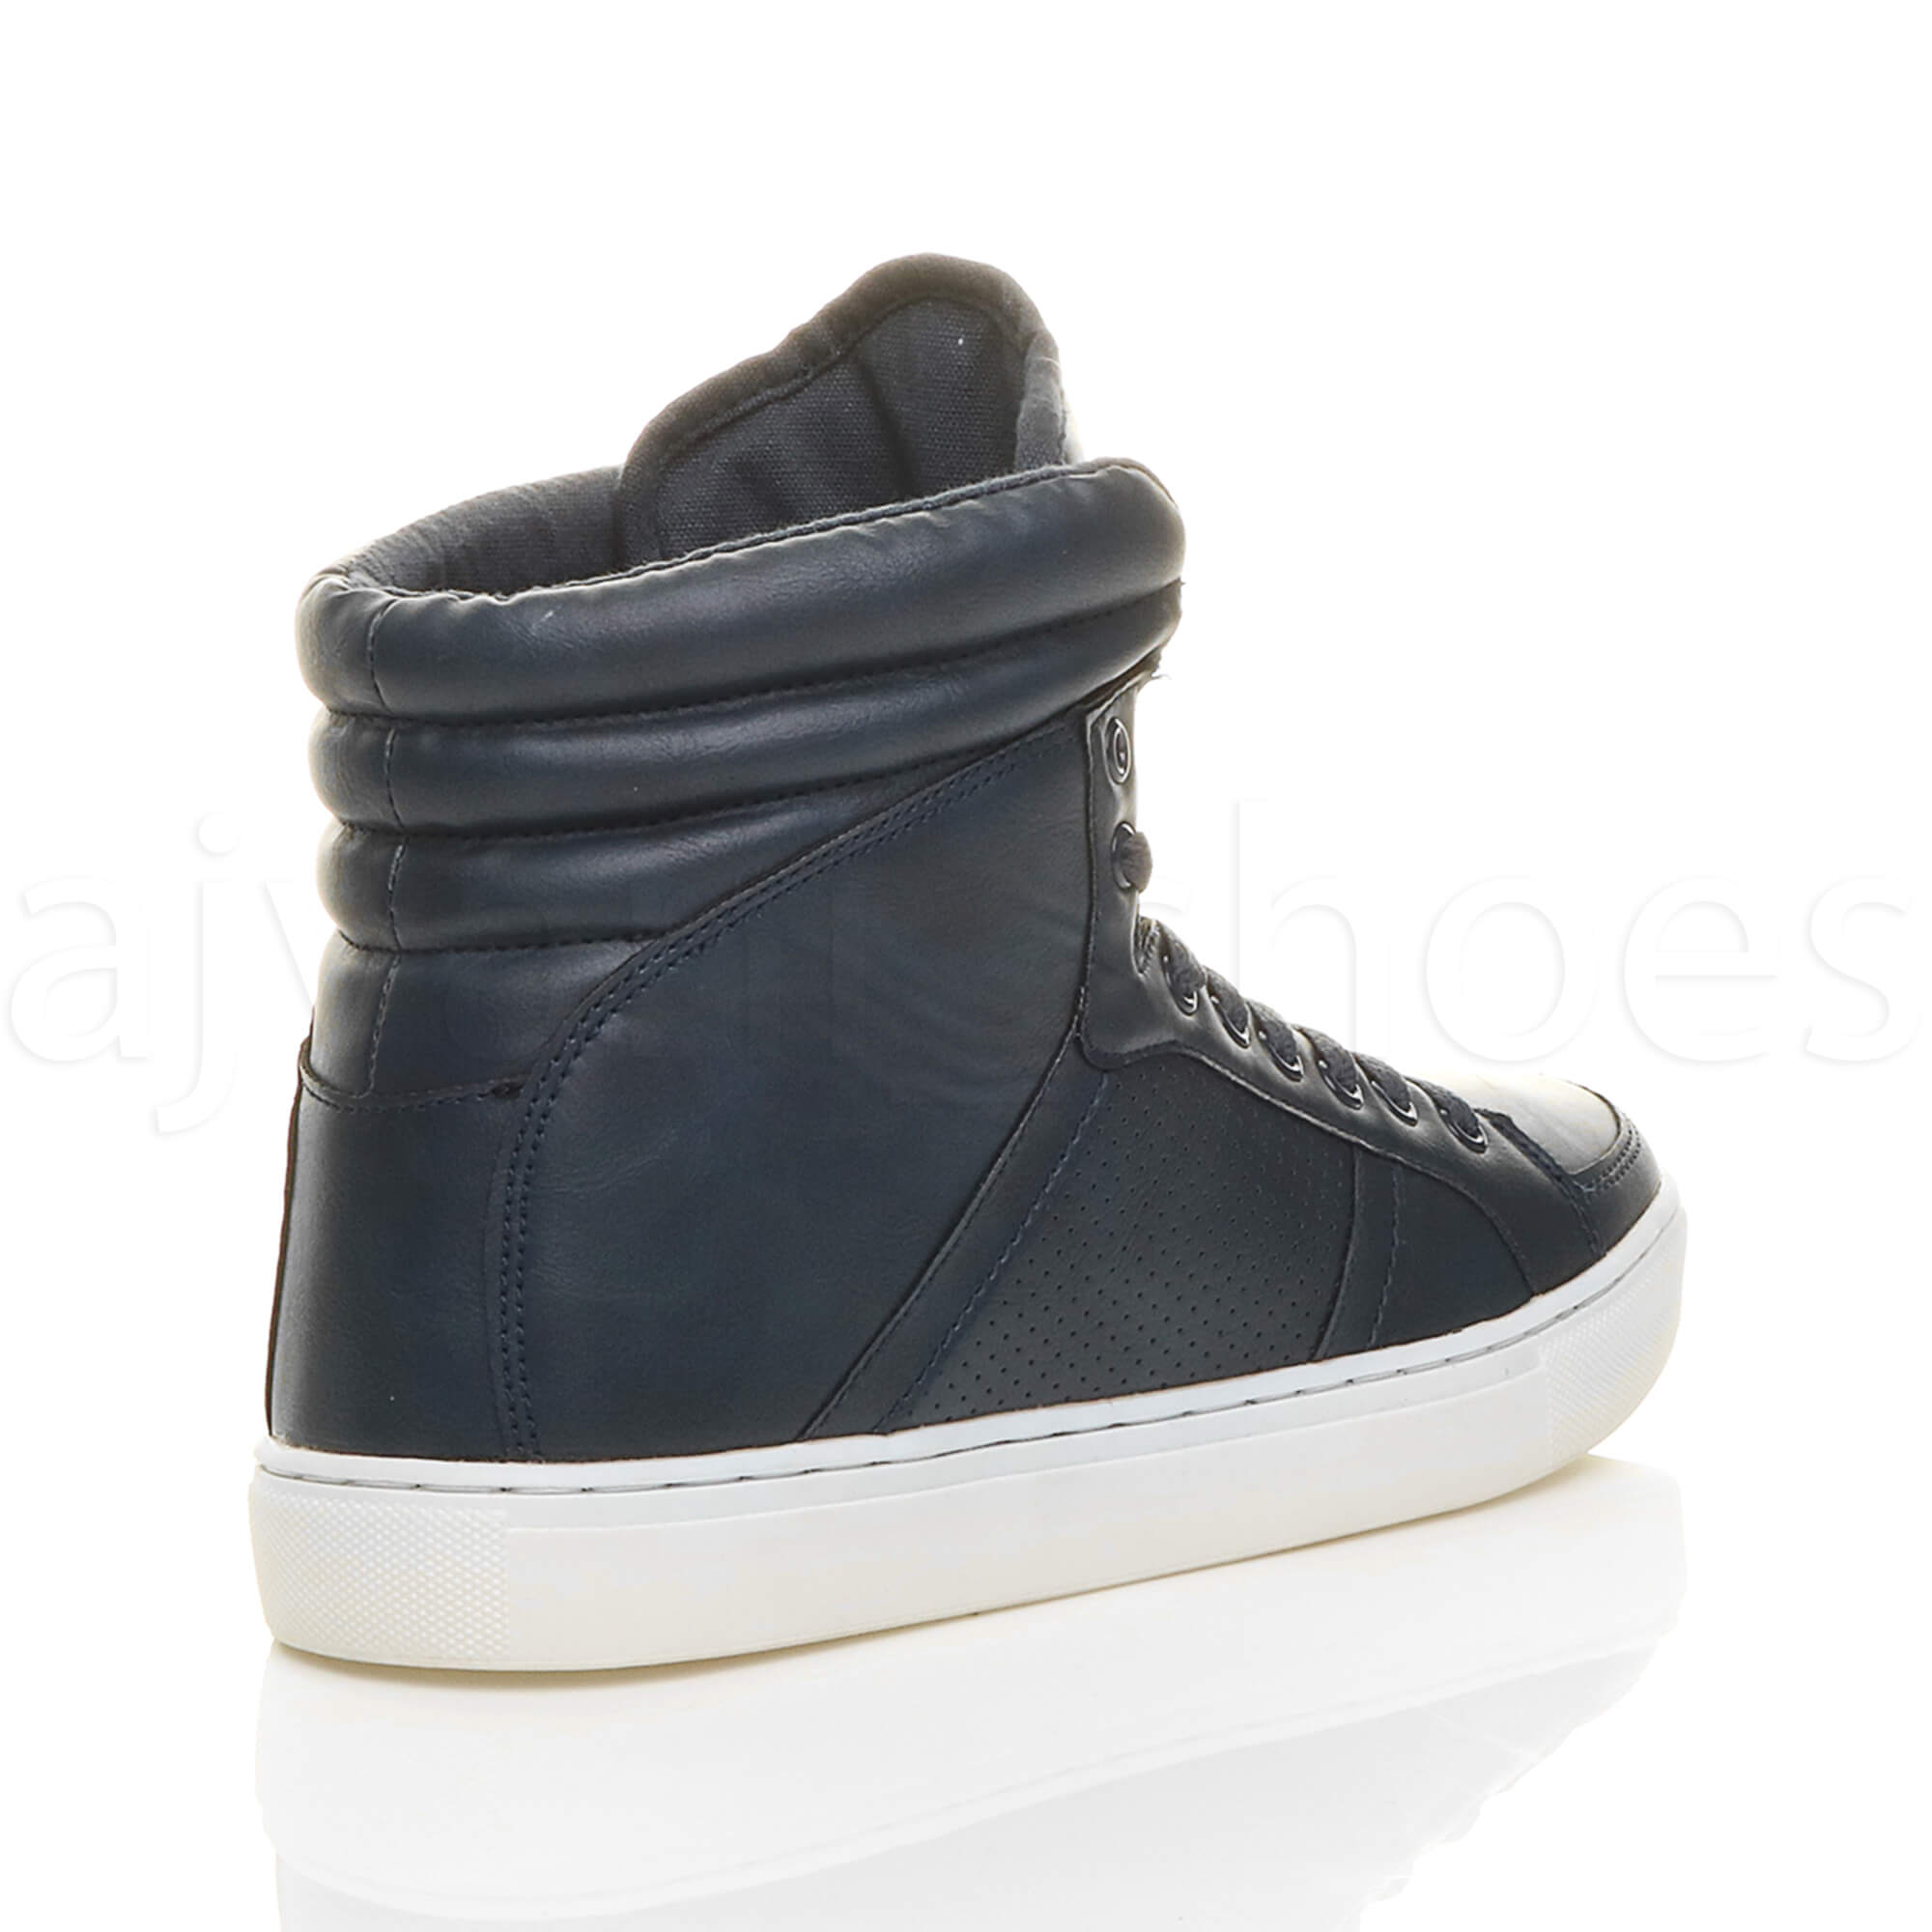 MENS-LACE-UP-CASUAL-FLAT-HI-HIGH-TOP-ANKLE-BOOTS-SHOES-TRAINERS-SNEAKERS-SIZE thumbnail 19